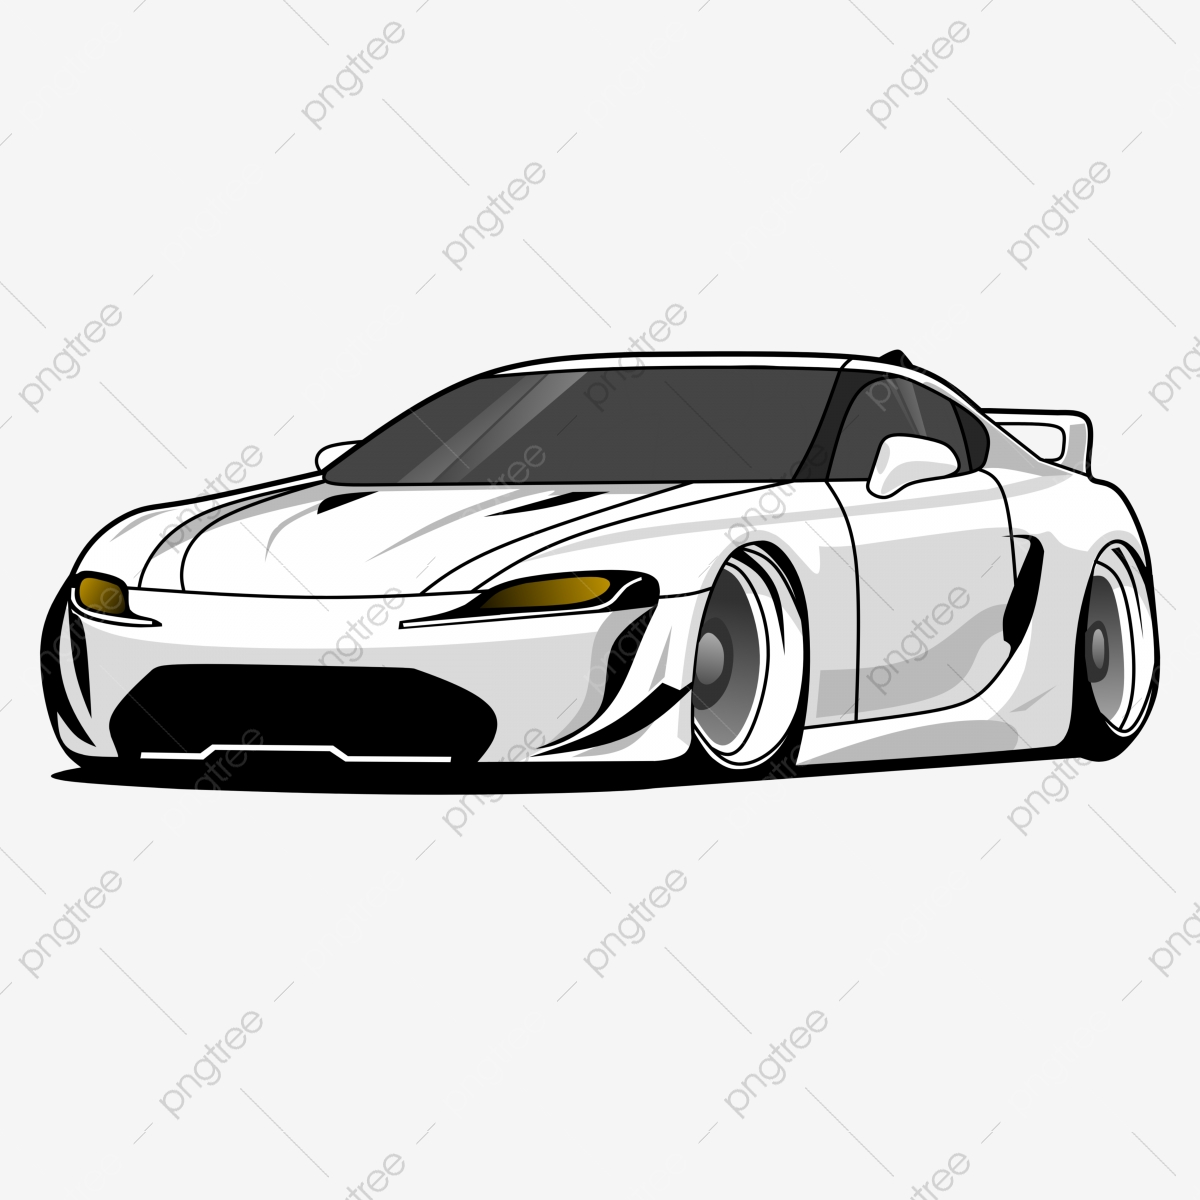 Sports Car Png Images Vector And Psd Files Free Download On Pngtree